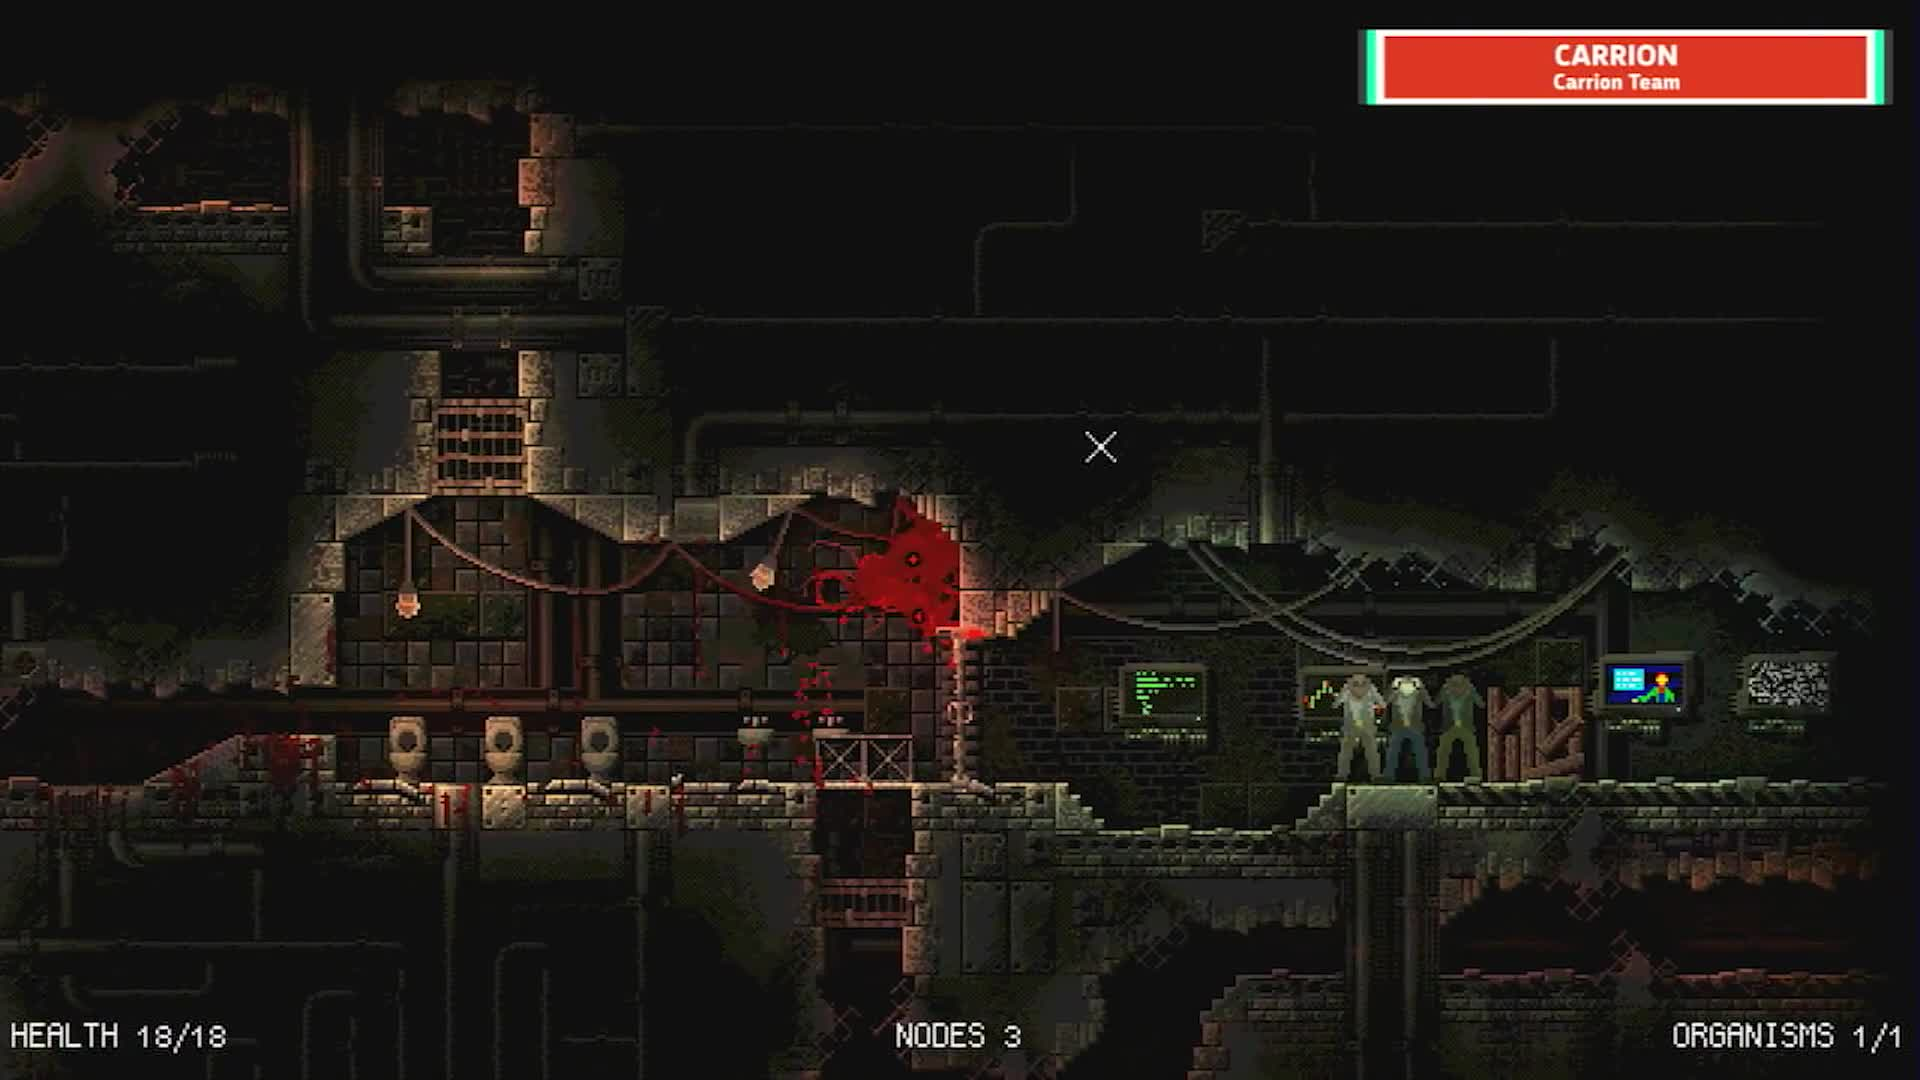 Carrion This Horror Game Makes You The Monster The Mix 2018 Gif